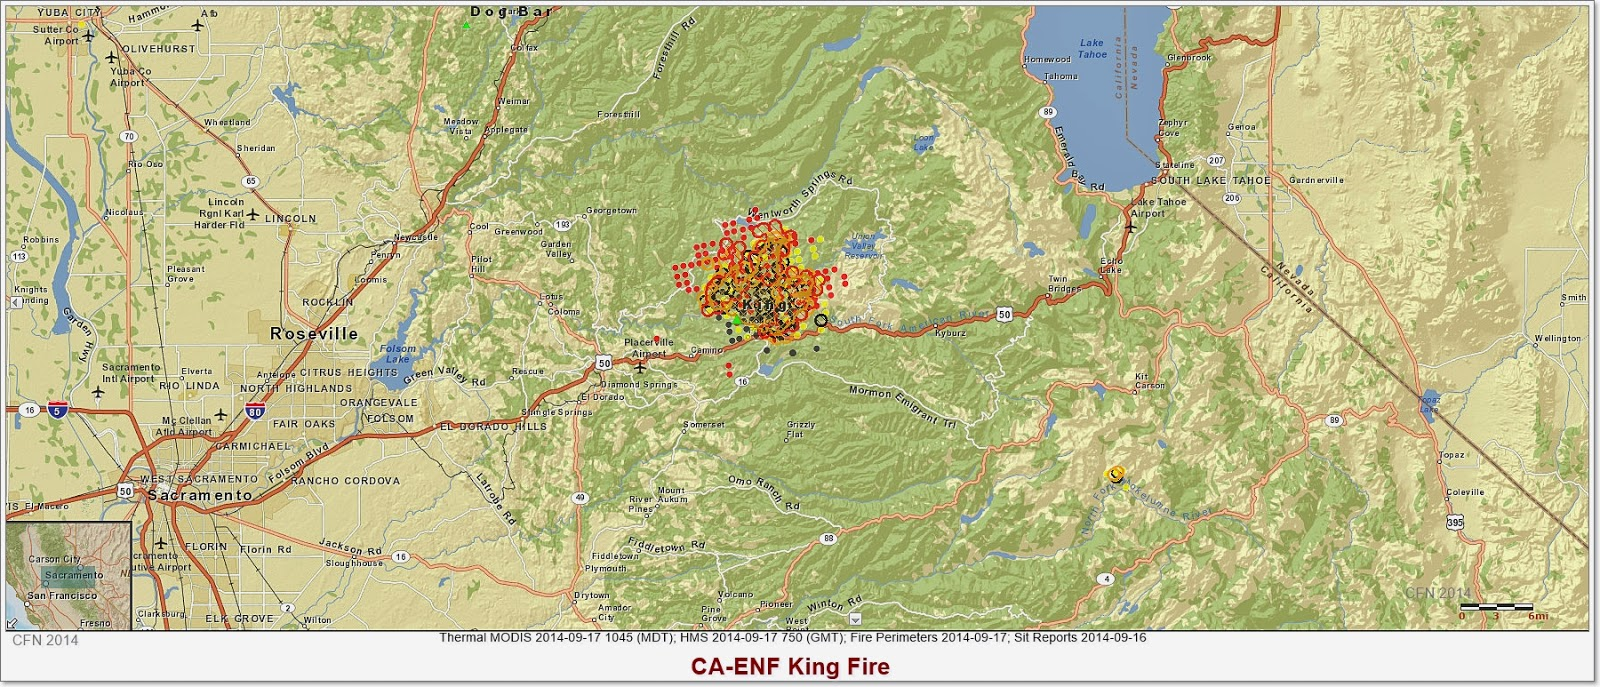 KING FIRE HOTSPOT AND PERIMETER MAP